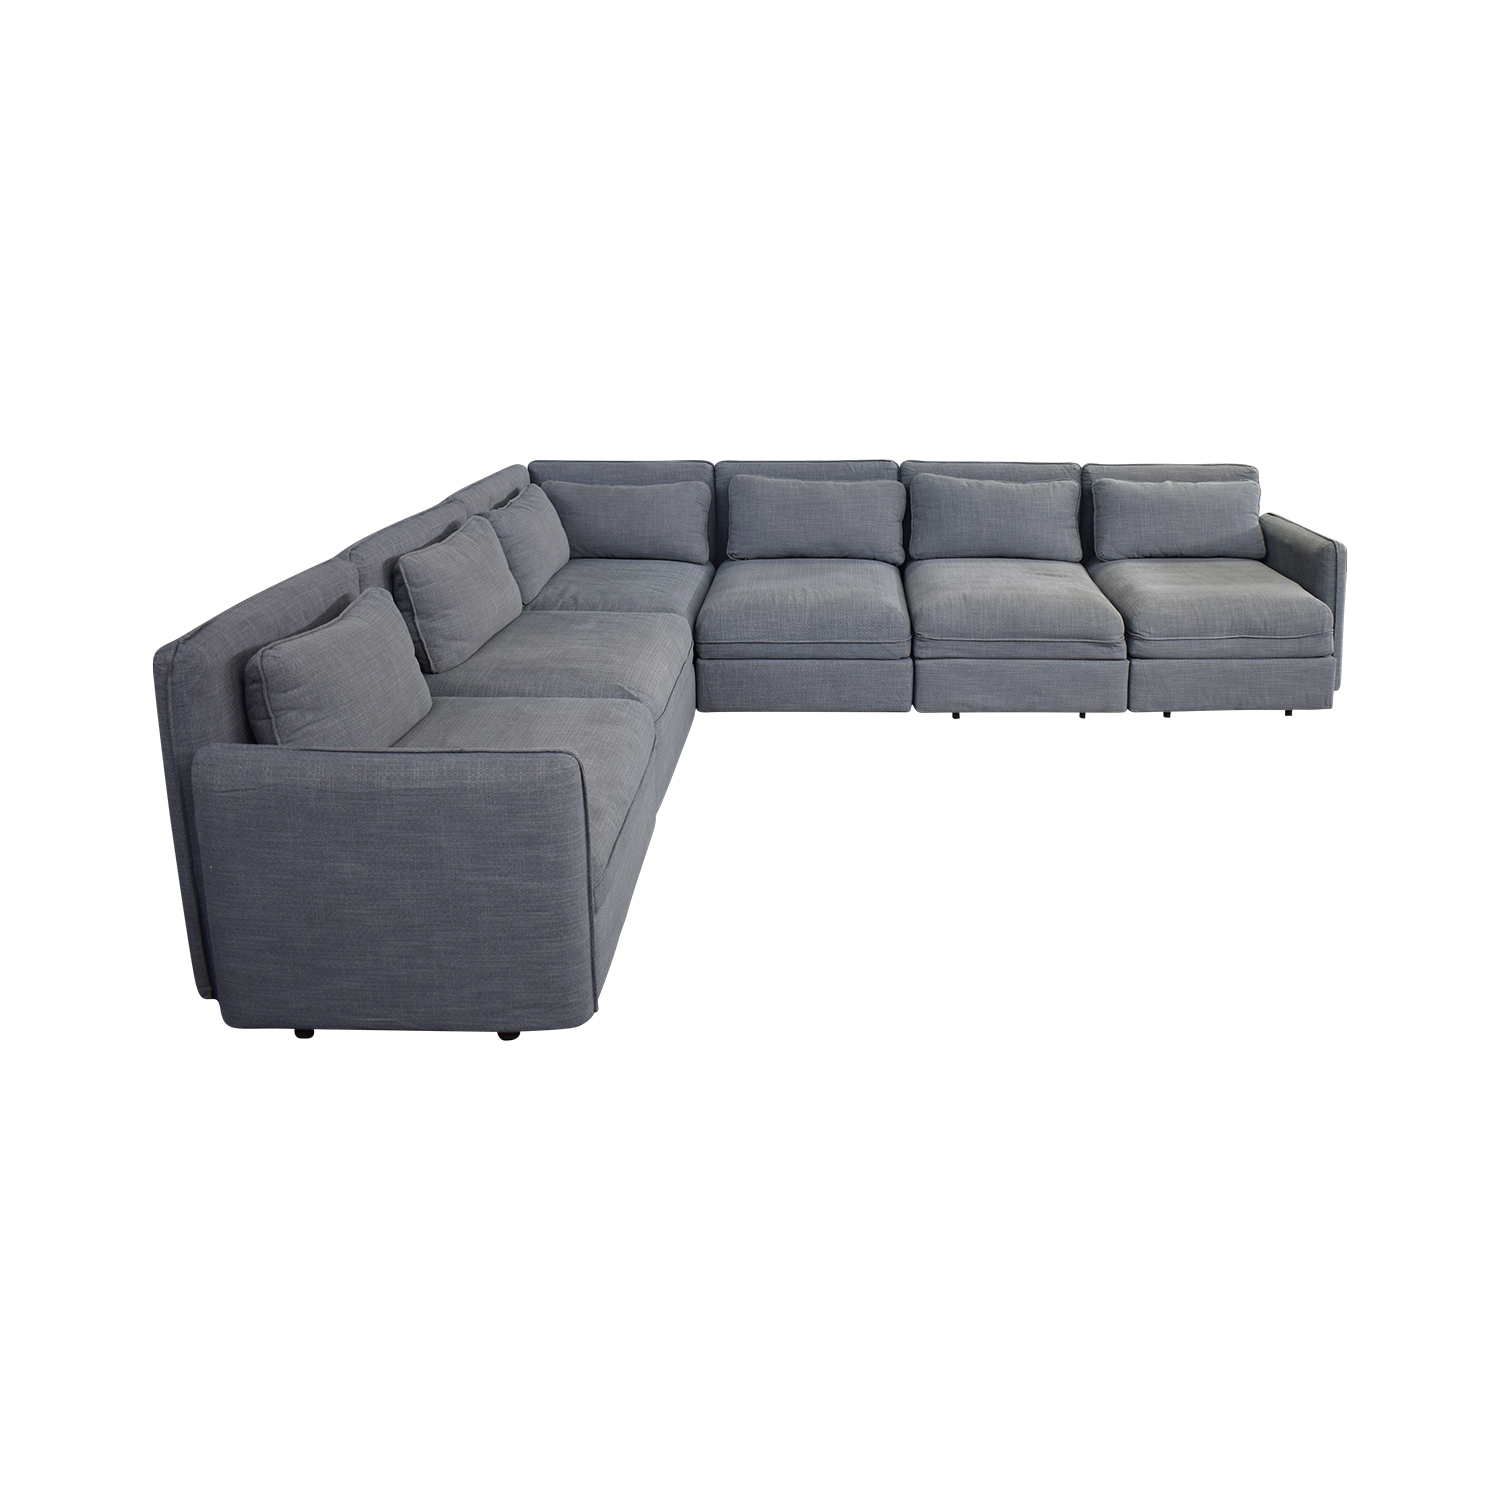 IKEA Ikea Six Piece Sectional Sleeper Sofa grey